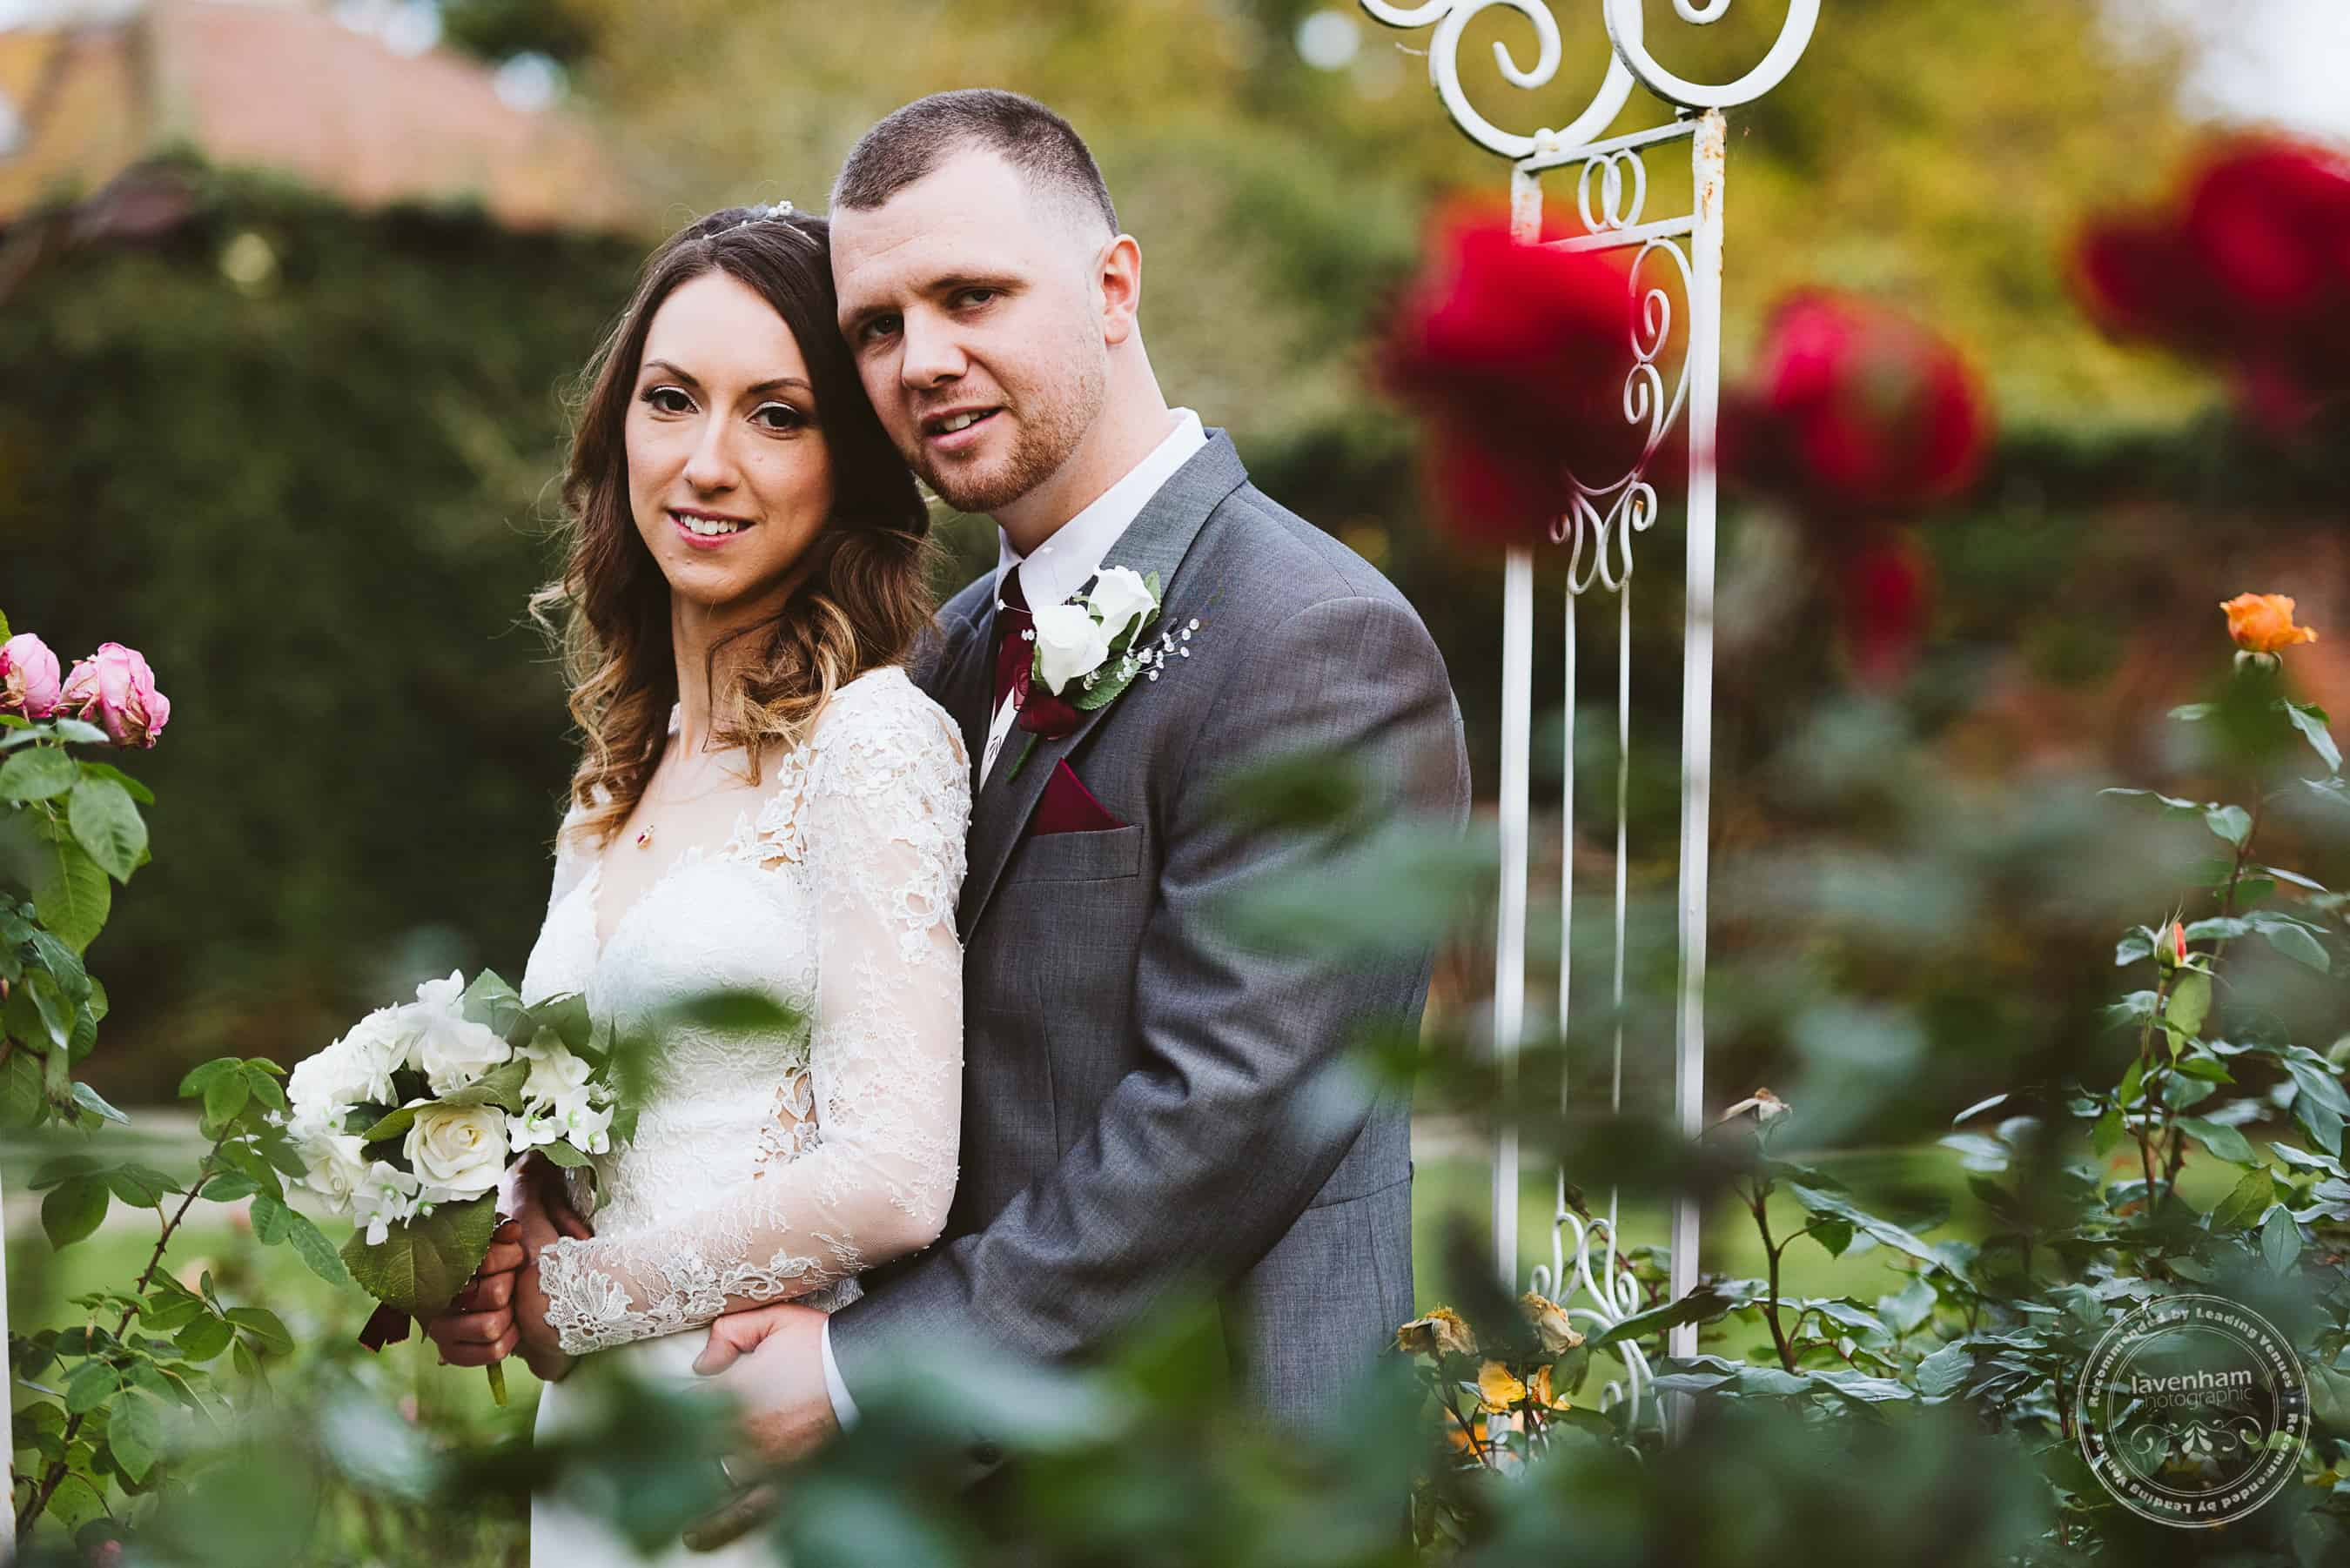 041118 Woodhall Manor Wedding Photography by Lavenham Photographic 088